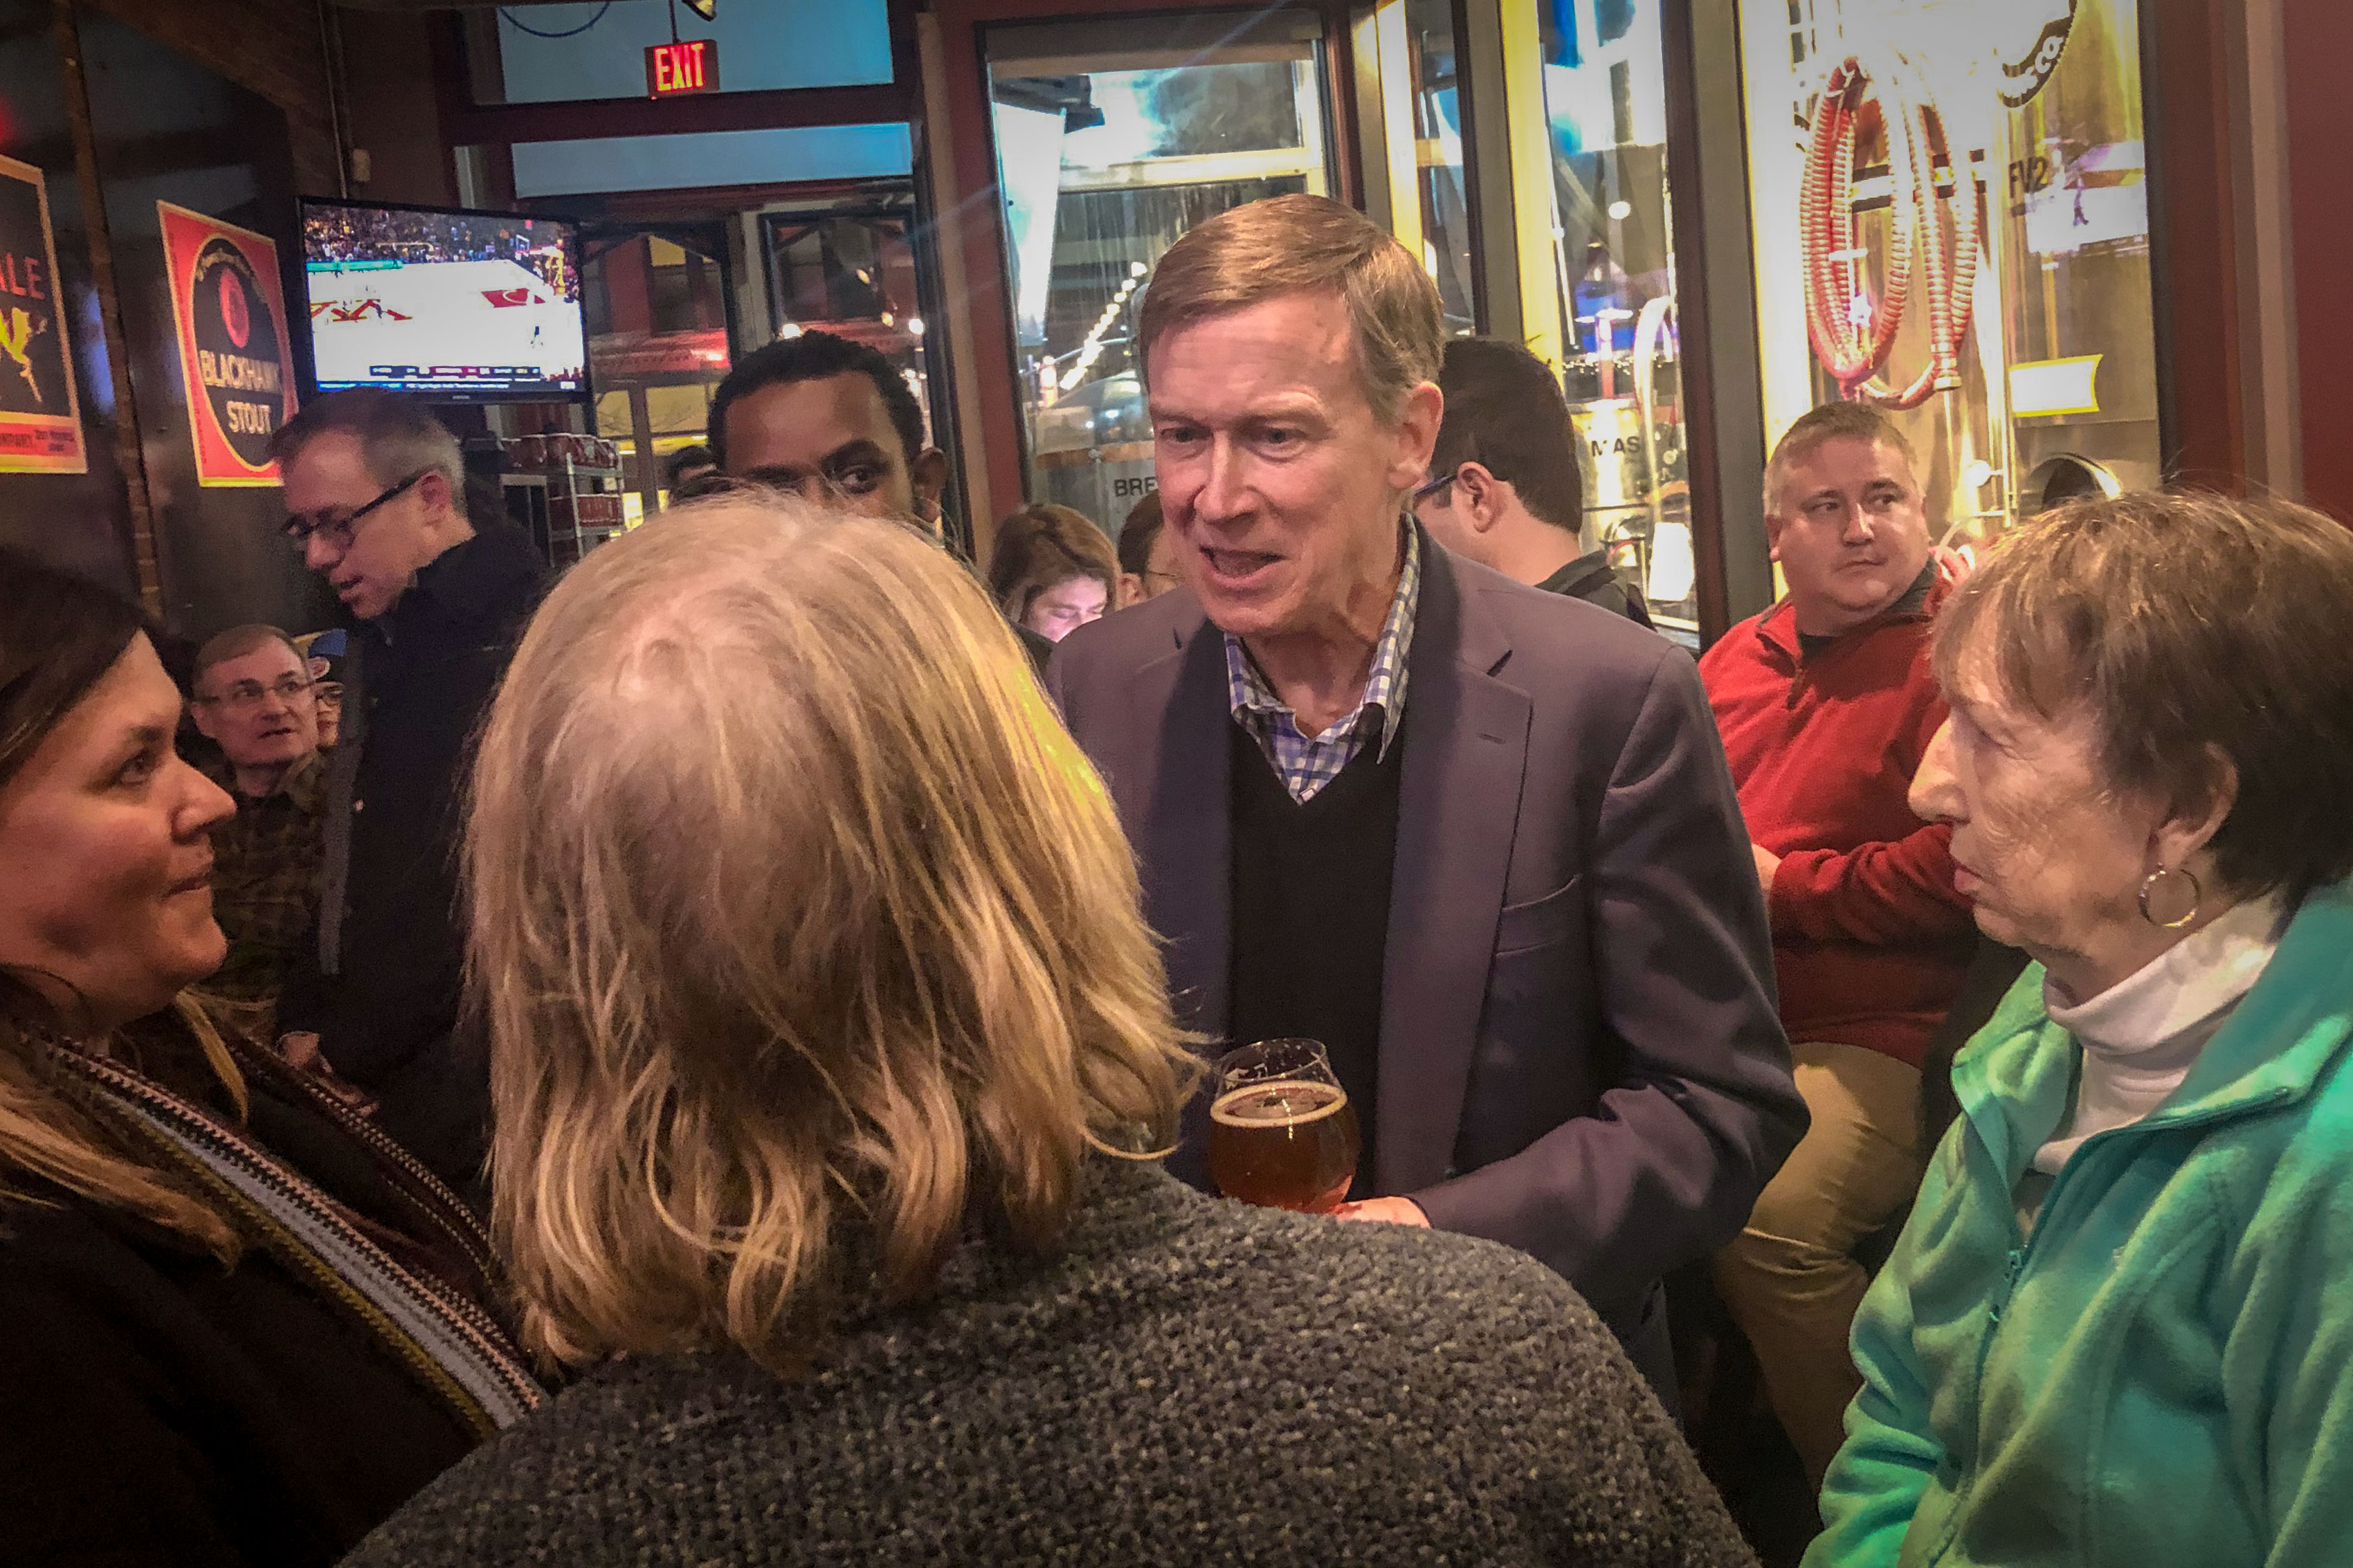 Photo: Hickenlooper January Iowa | Brewery Visit - ACotton